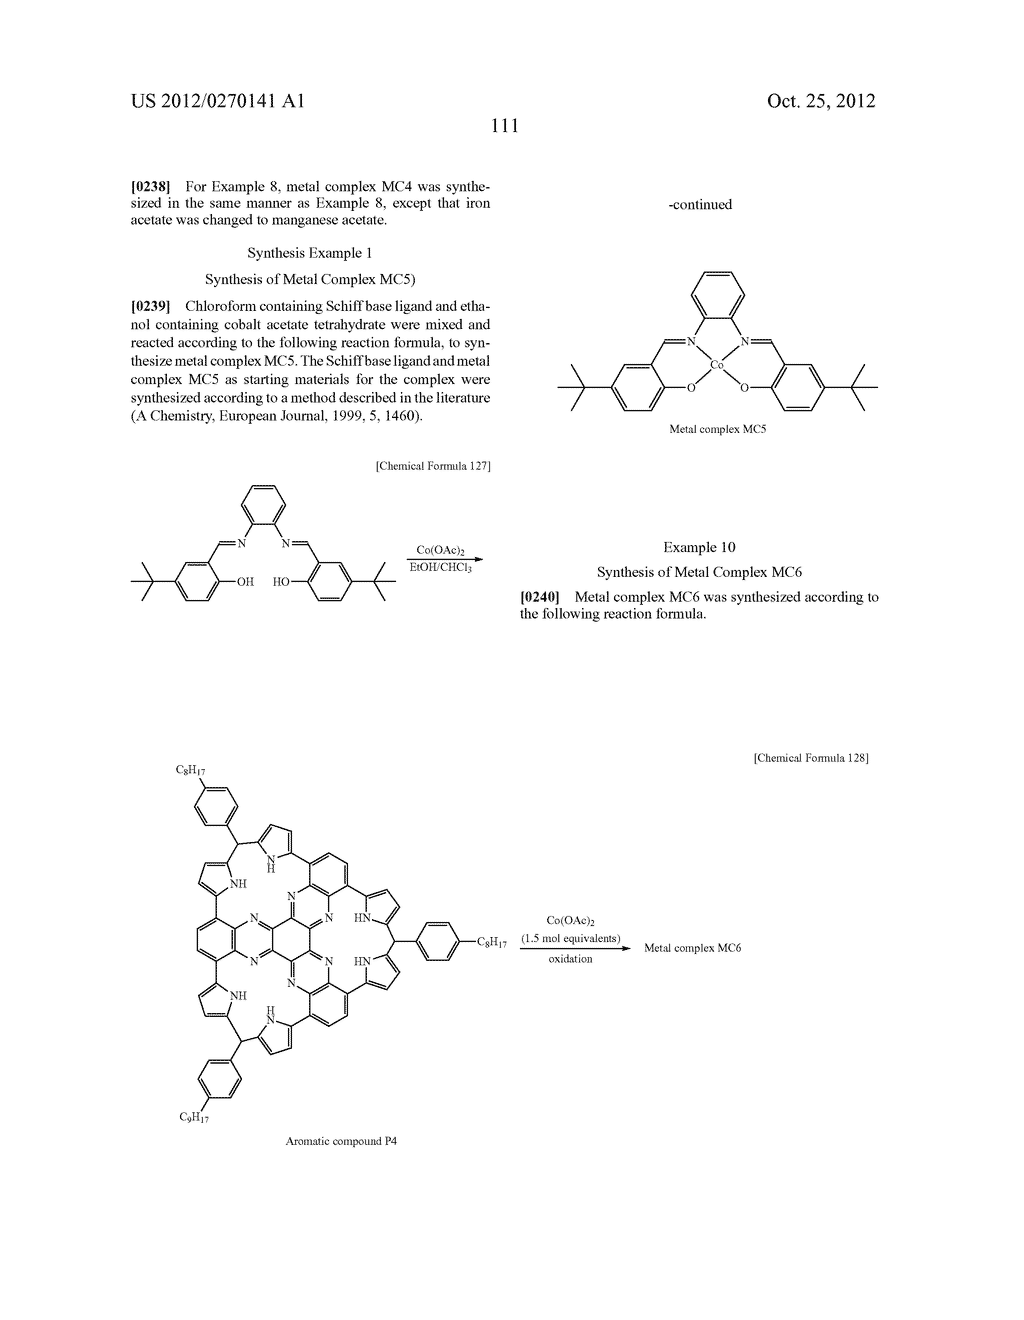 NITROGEN-CONTAINING AROMATIC COMPOUNDS AND METAL COMPLEXES - diagram, schematic, and image 112